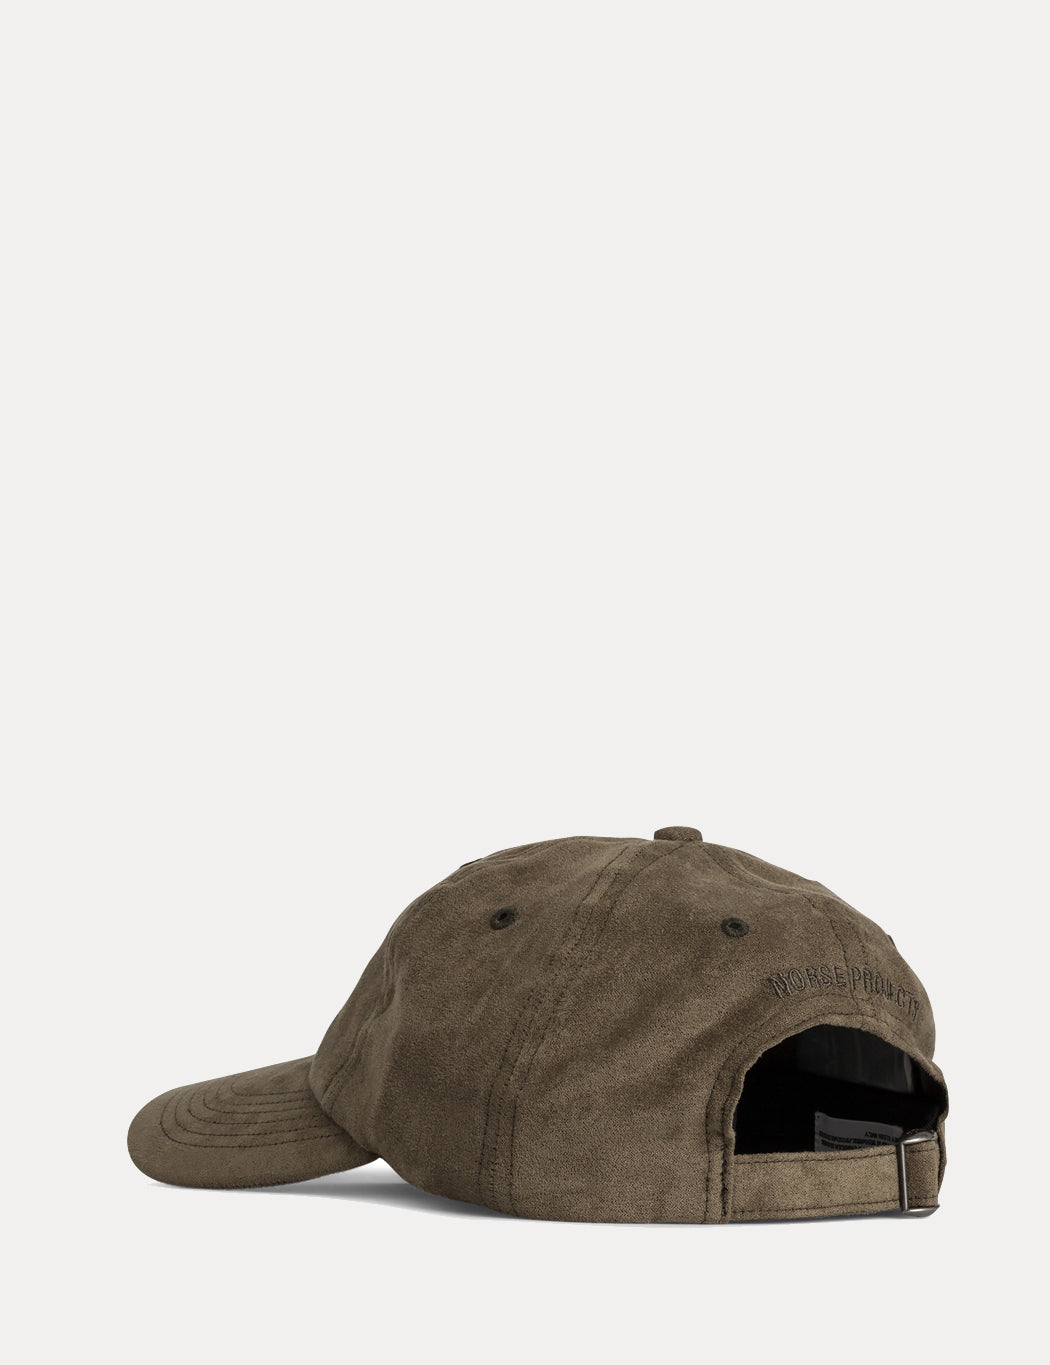 de51d3792c1 ... Norse Projects Fake Suede Sports Cap - Dried Olive Green